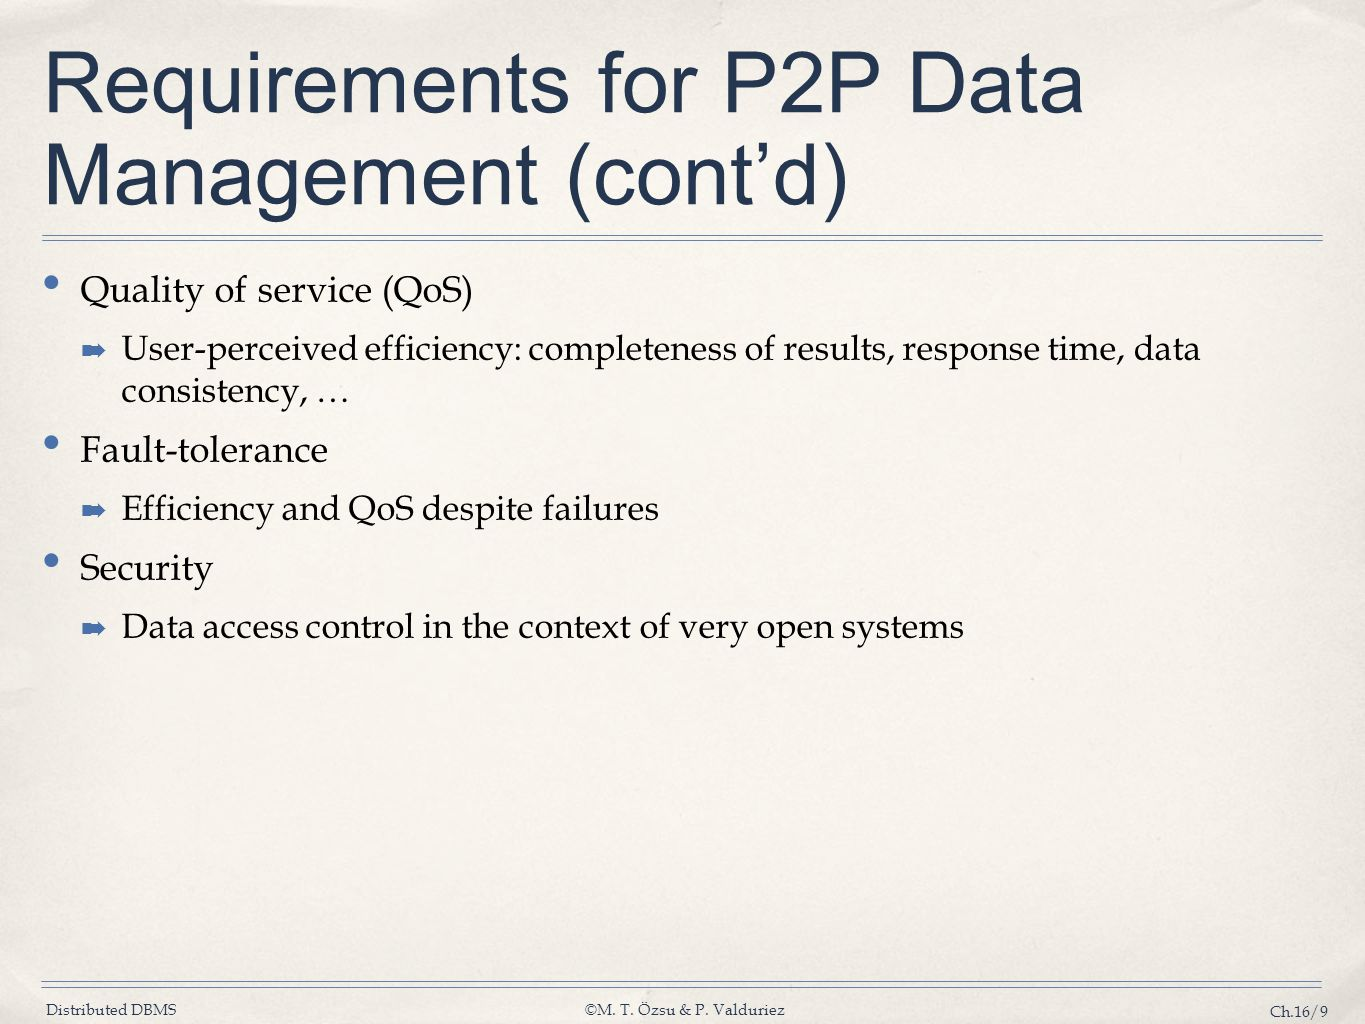 Distributed DBMS©M. T. Özsu & P. Valduriez Ch.16/9 Requirements for P2P Data Management (cont'd) Quality of service (QoS) ➡ User-perceived efficiency: